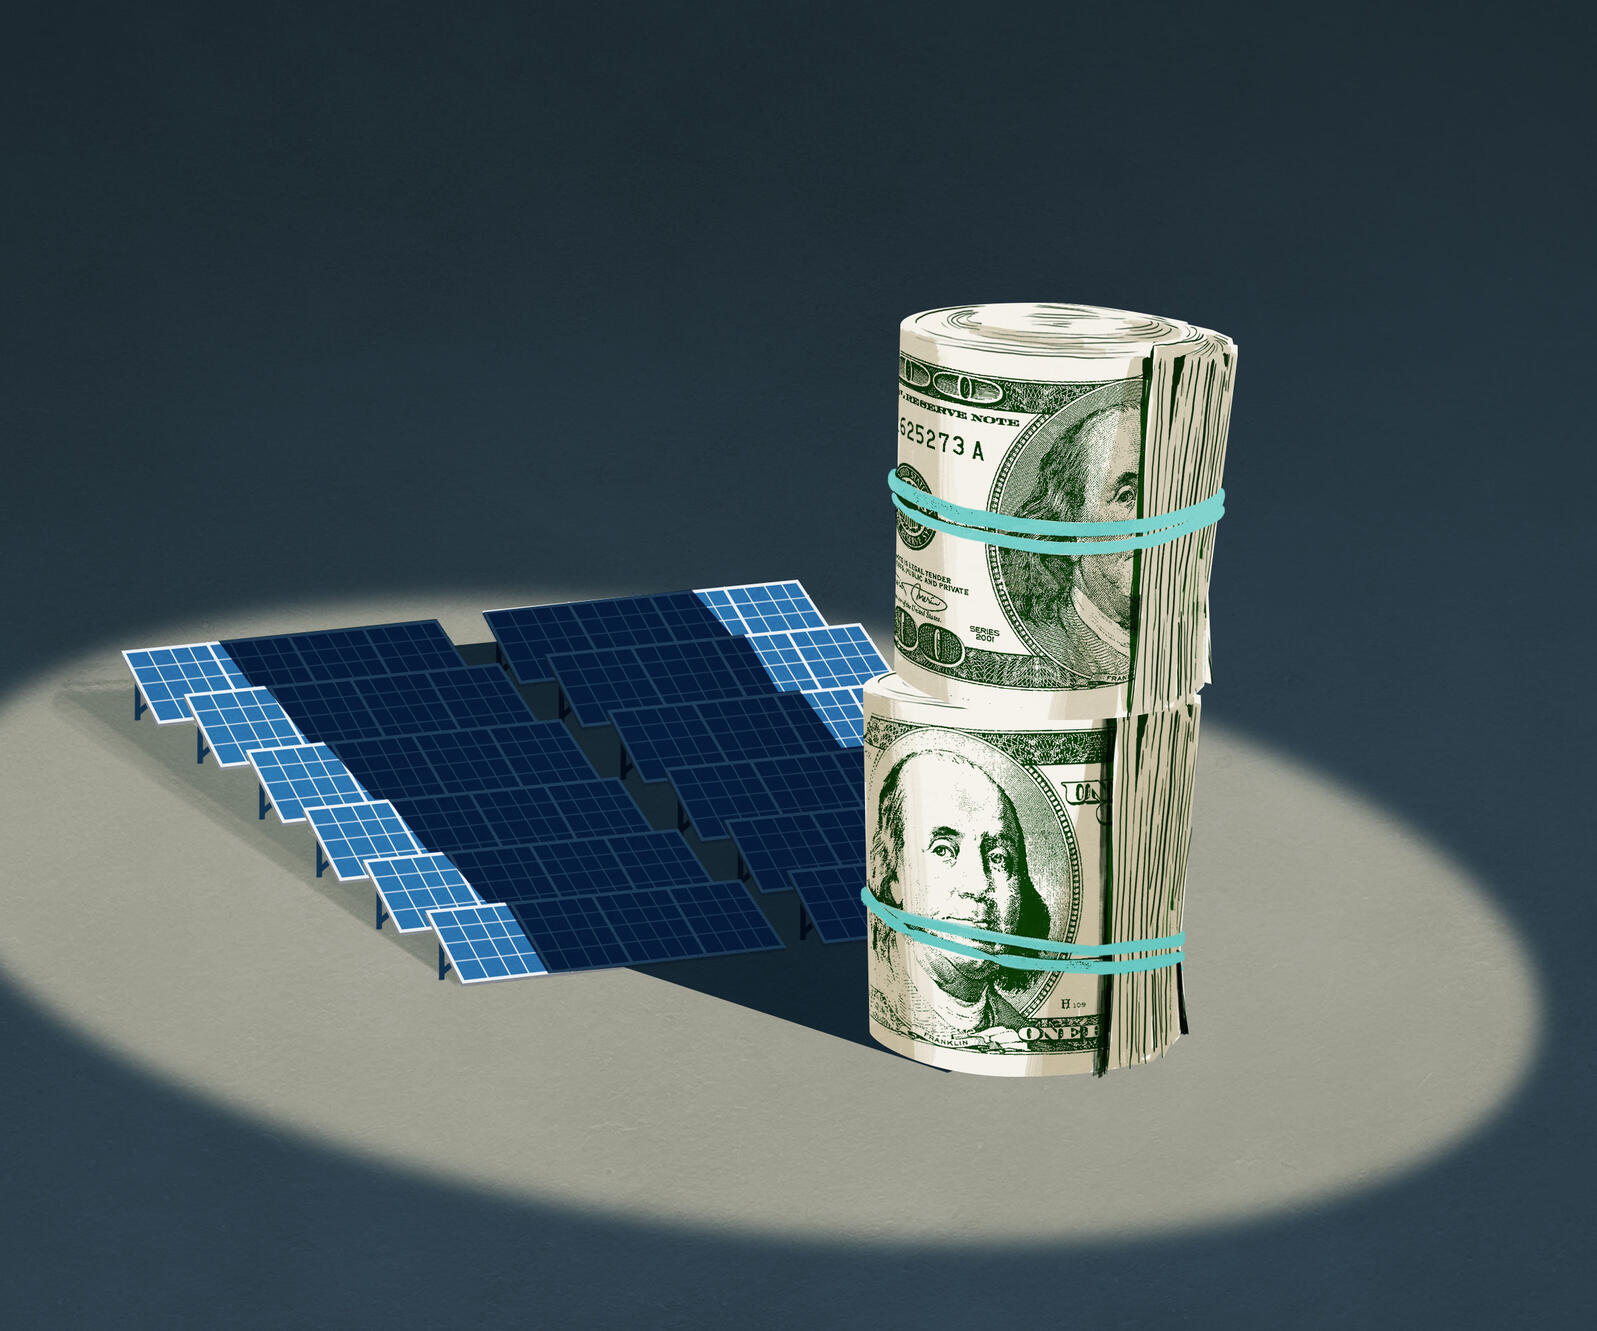 Why Electric Utilities Are Resorting to Dark Money and Bribes to Resist  Renewables   Audubon